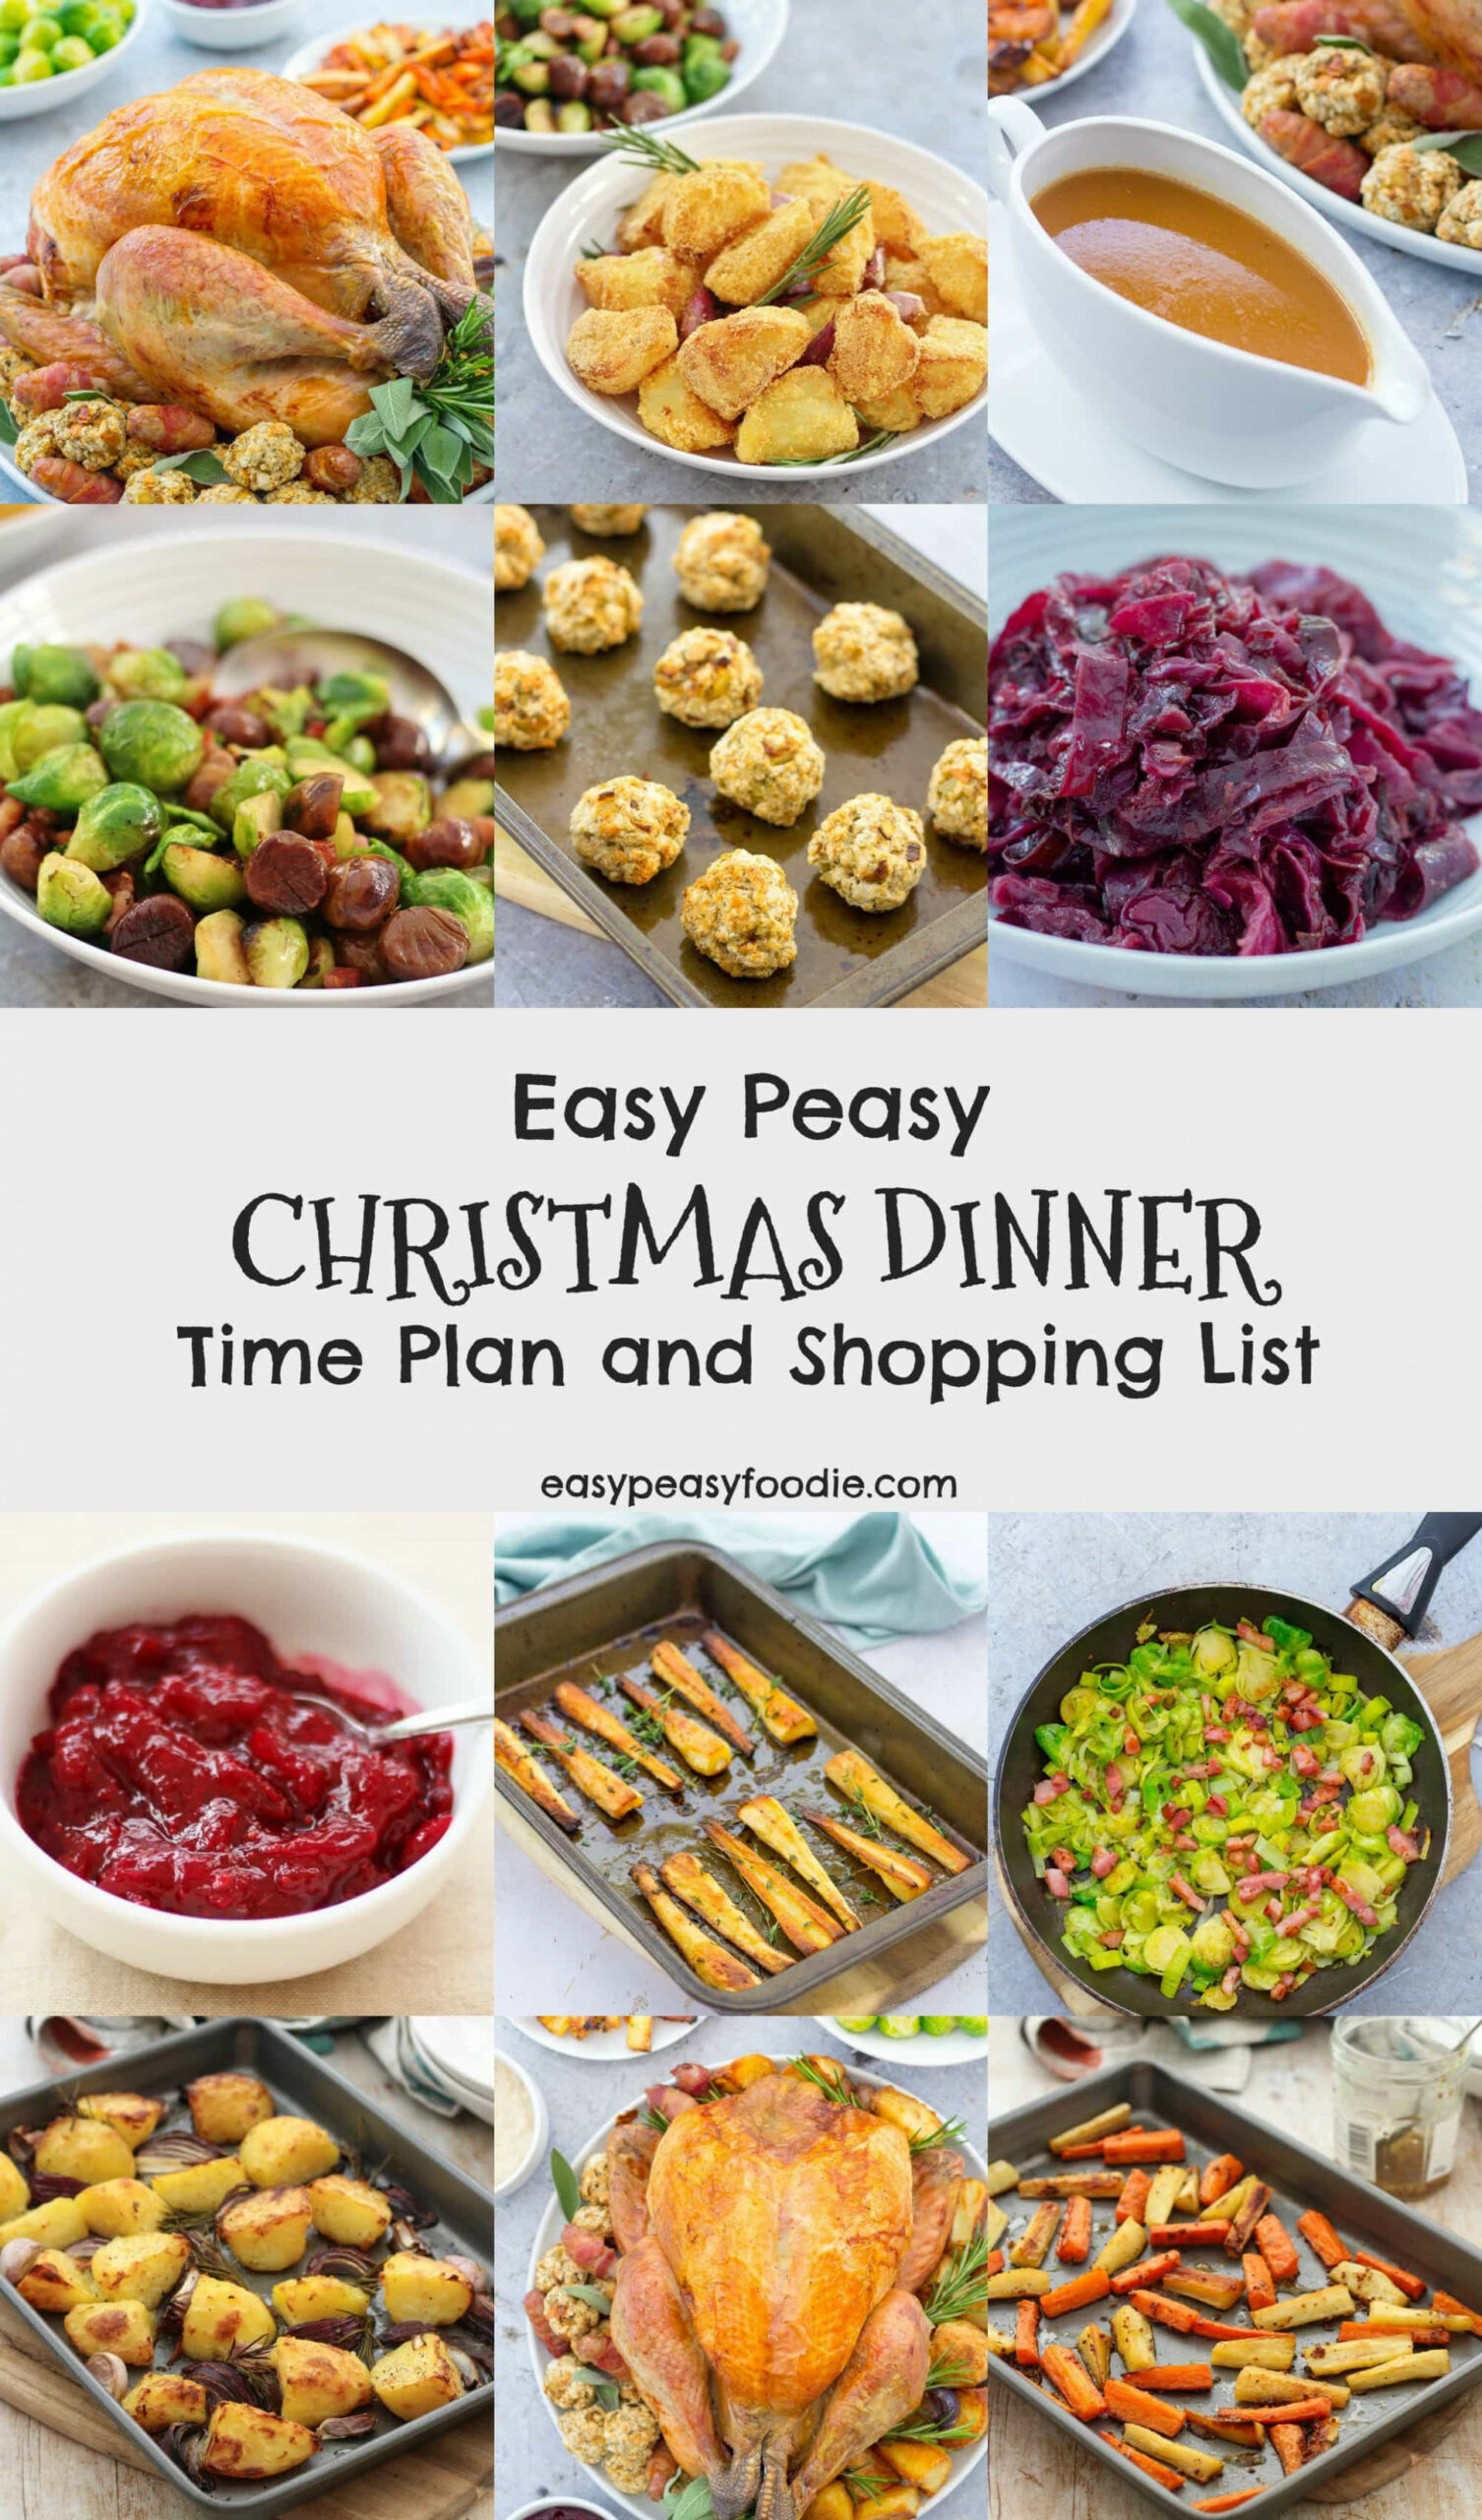 Easy Peasy Christmas Dinner Time Plan and Shopping List ..